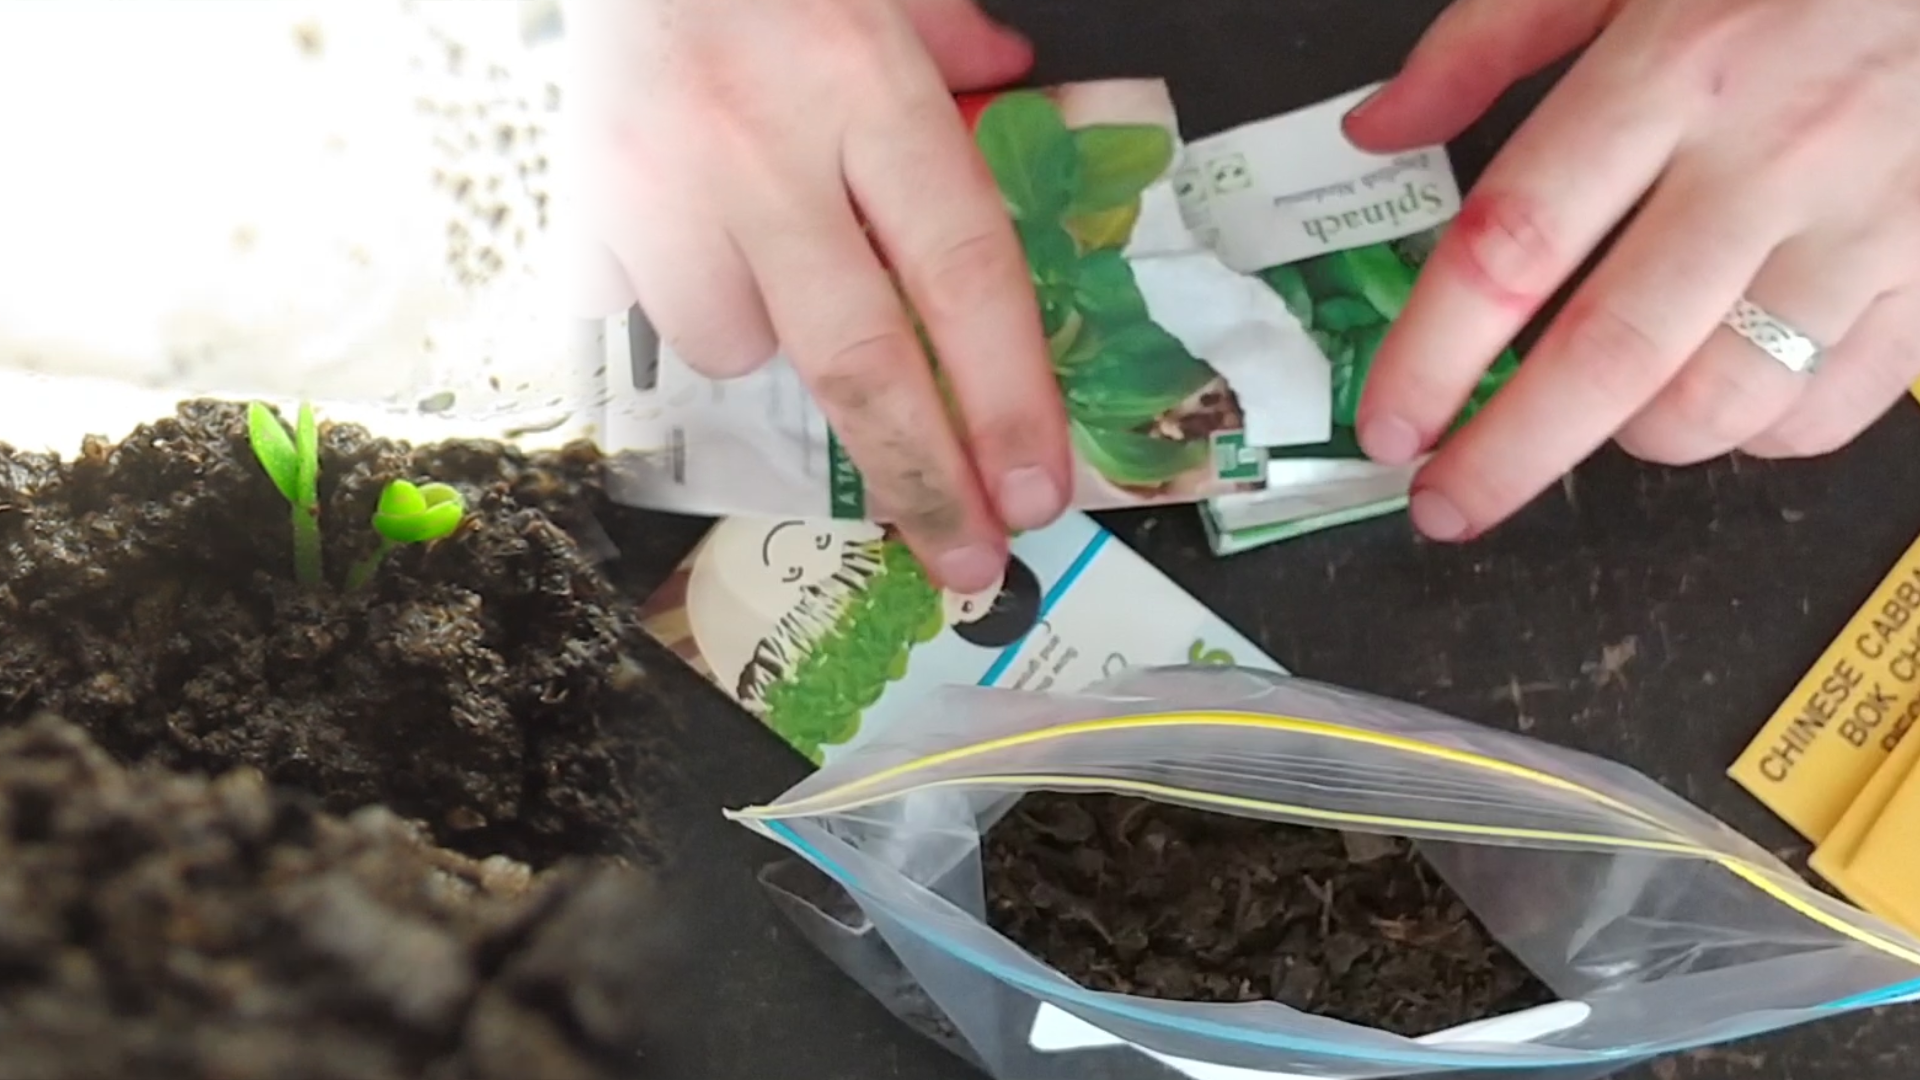 Indoor gardening - create a microclimate dirtbag!